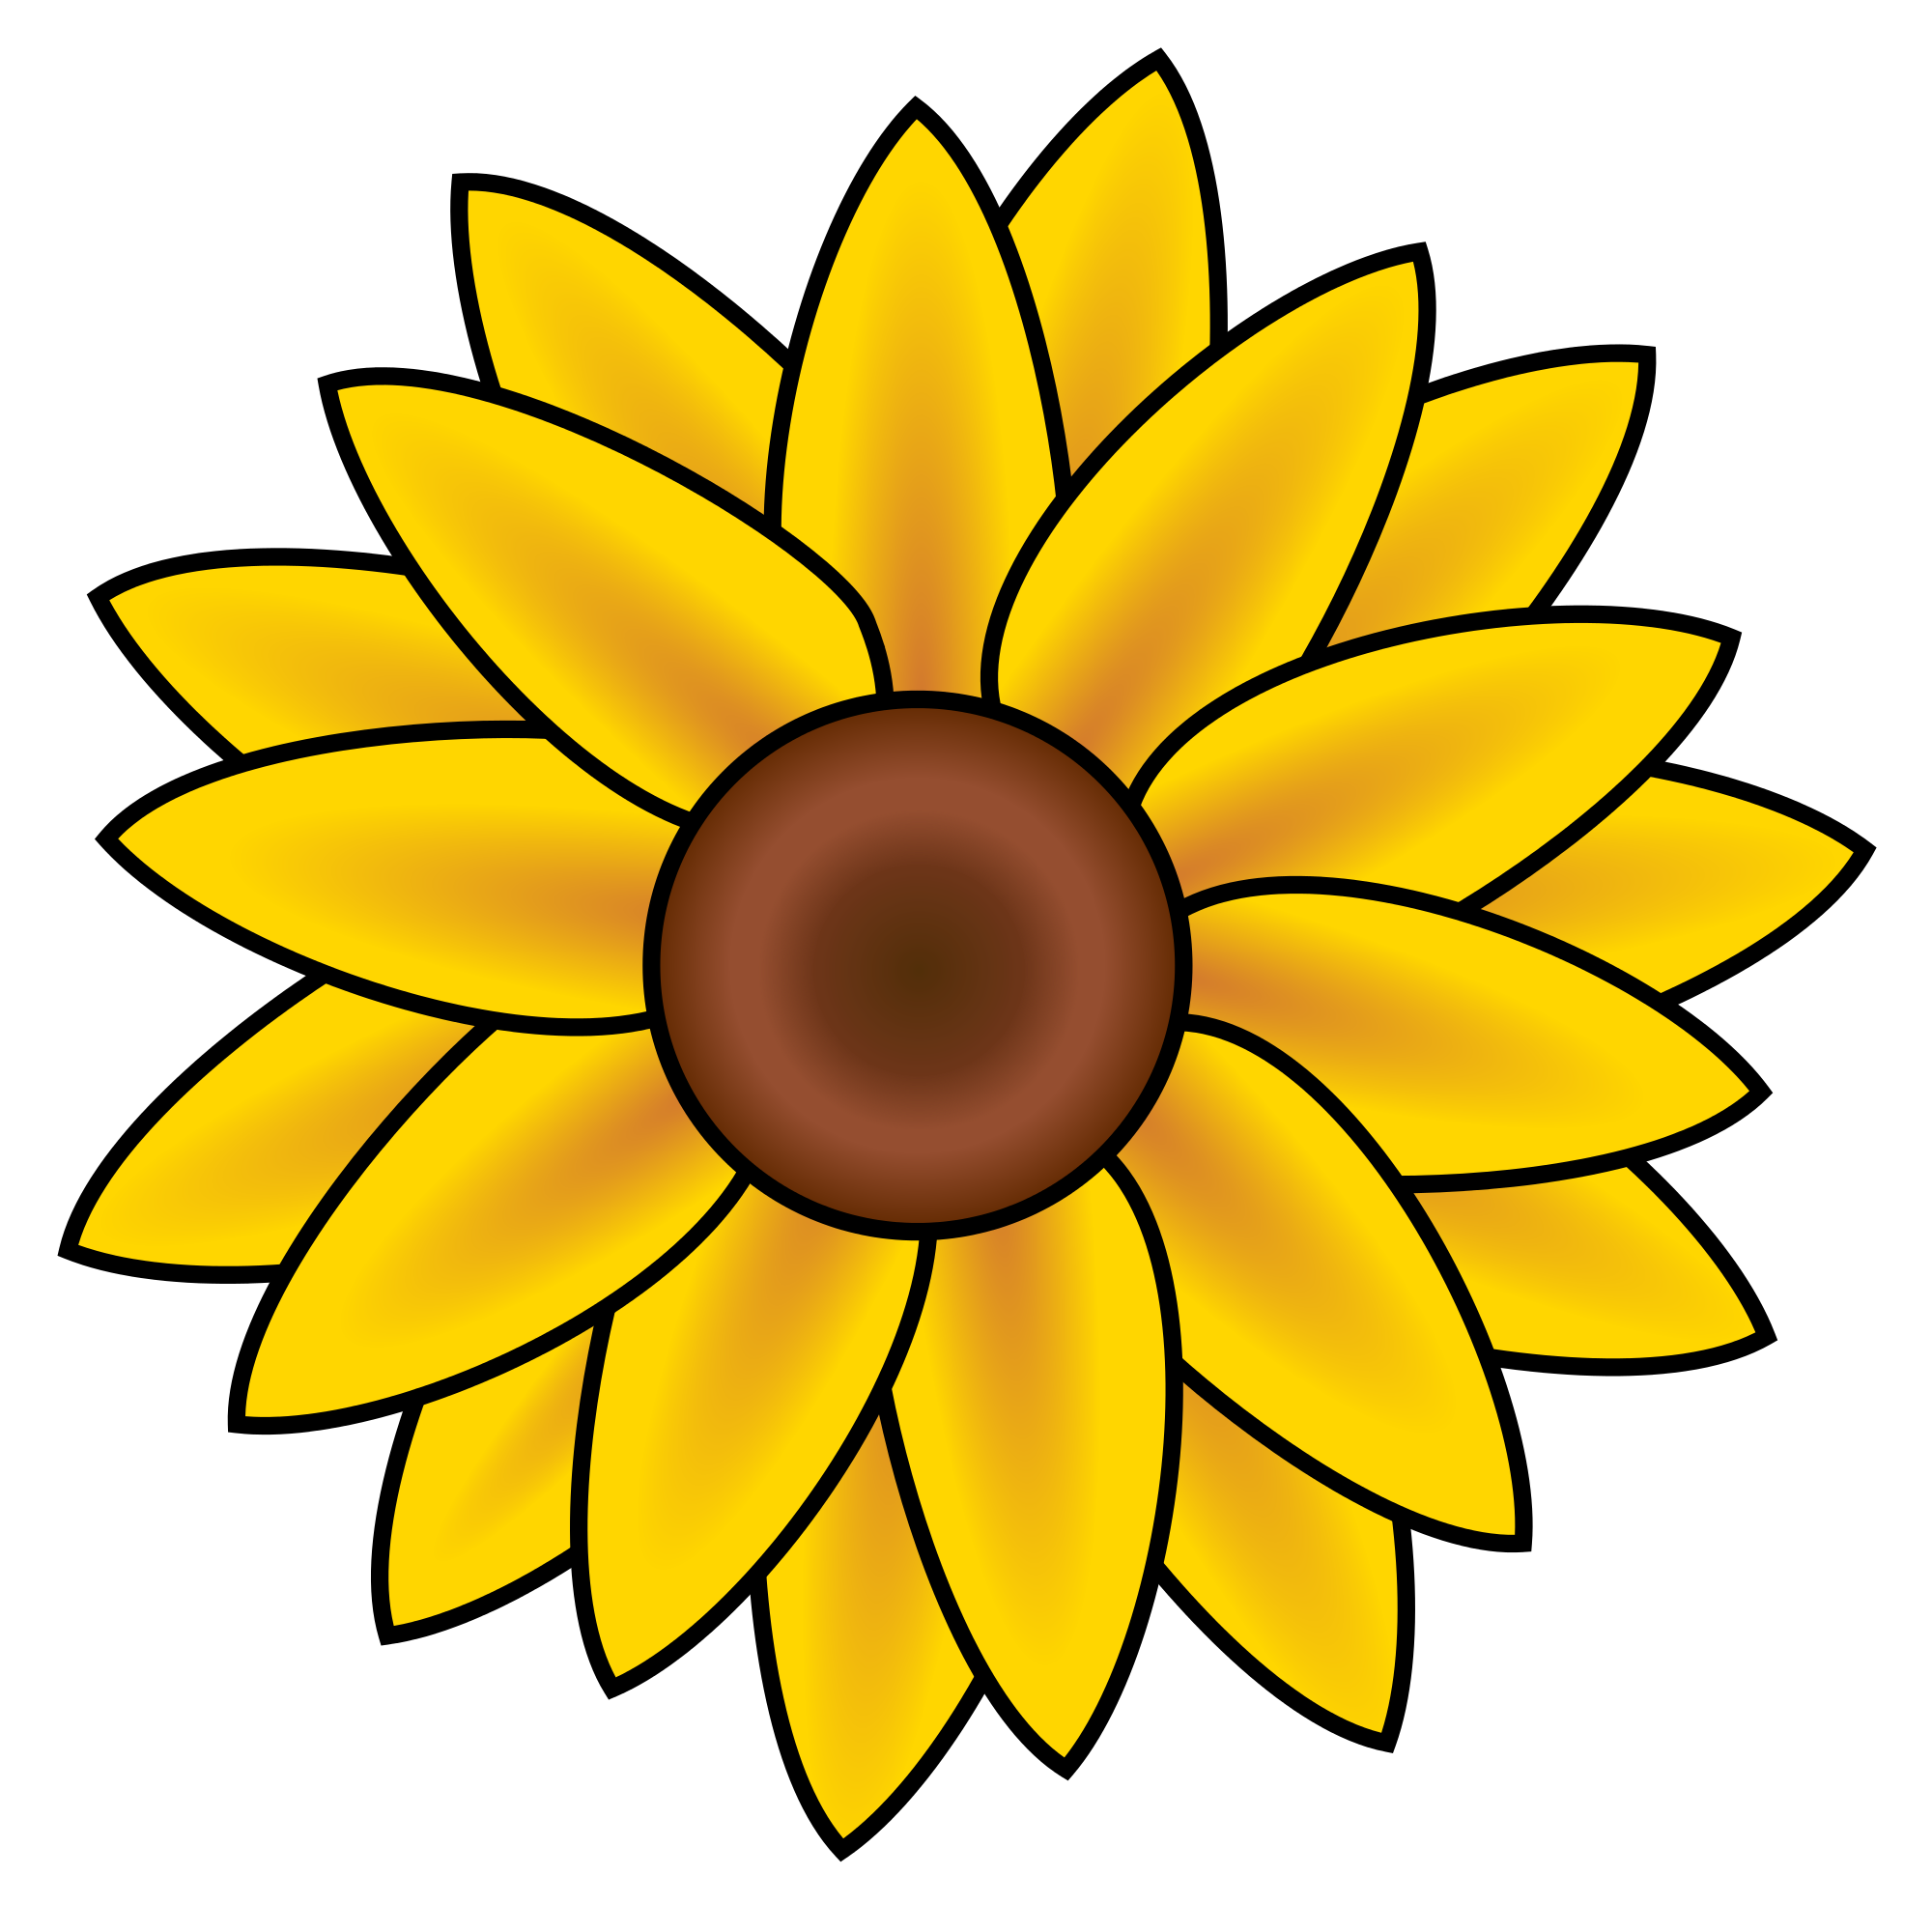 Sunflower svg #14, Download drawings